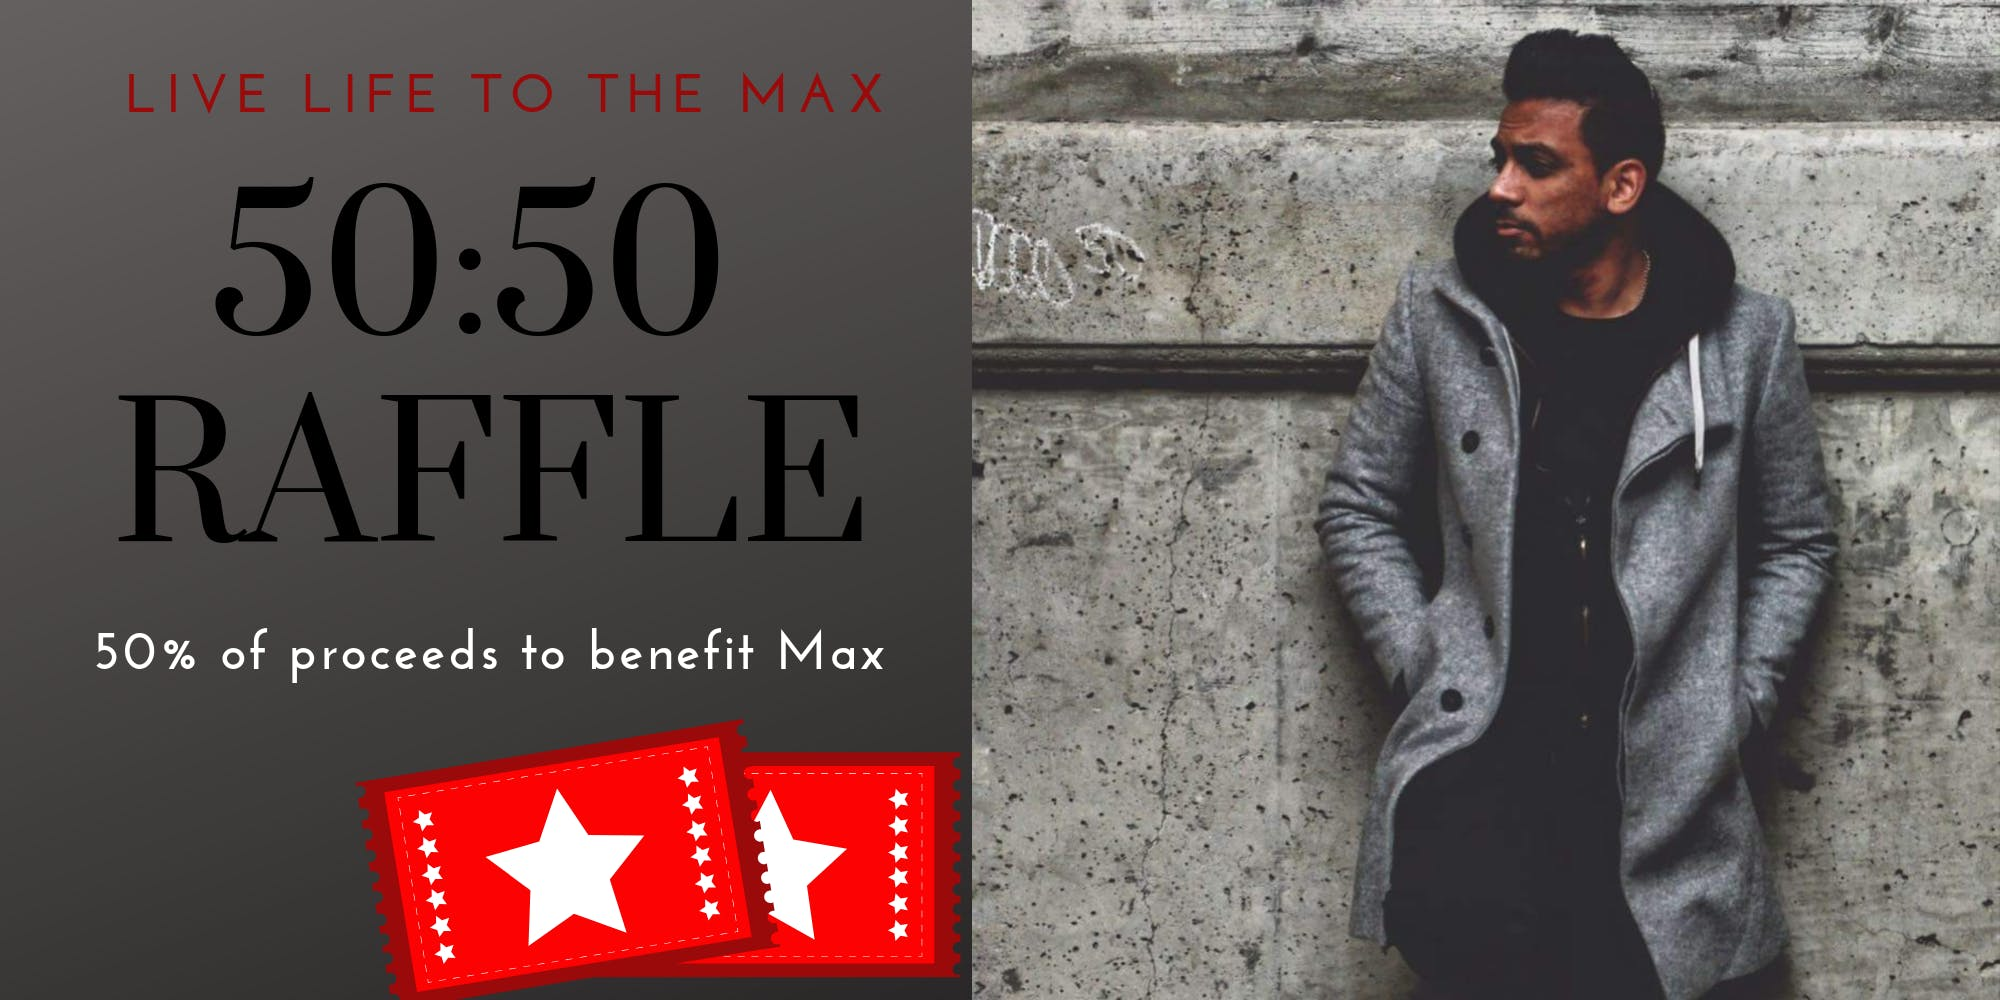 Live Life to the Max 50:50